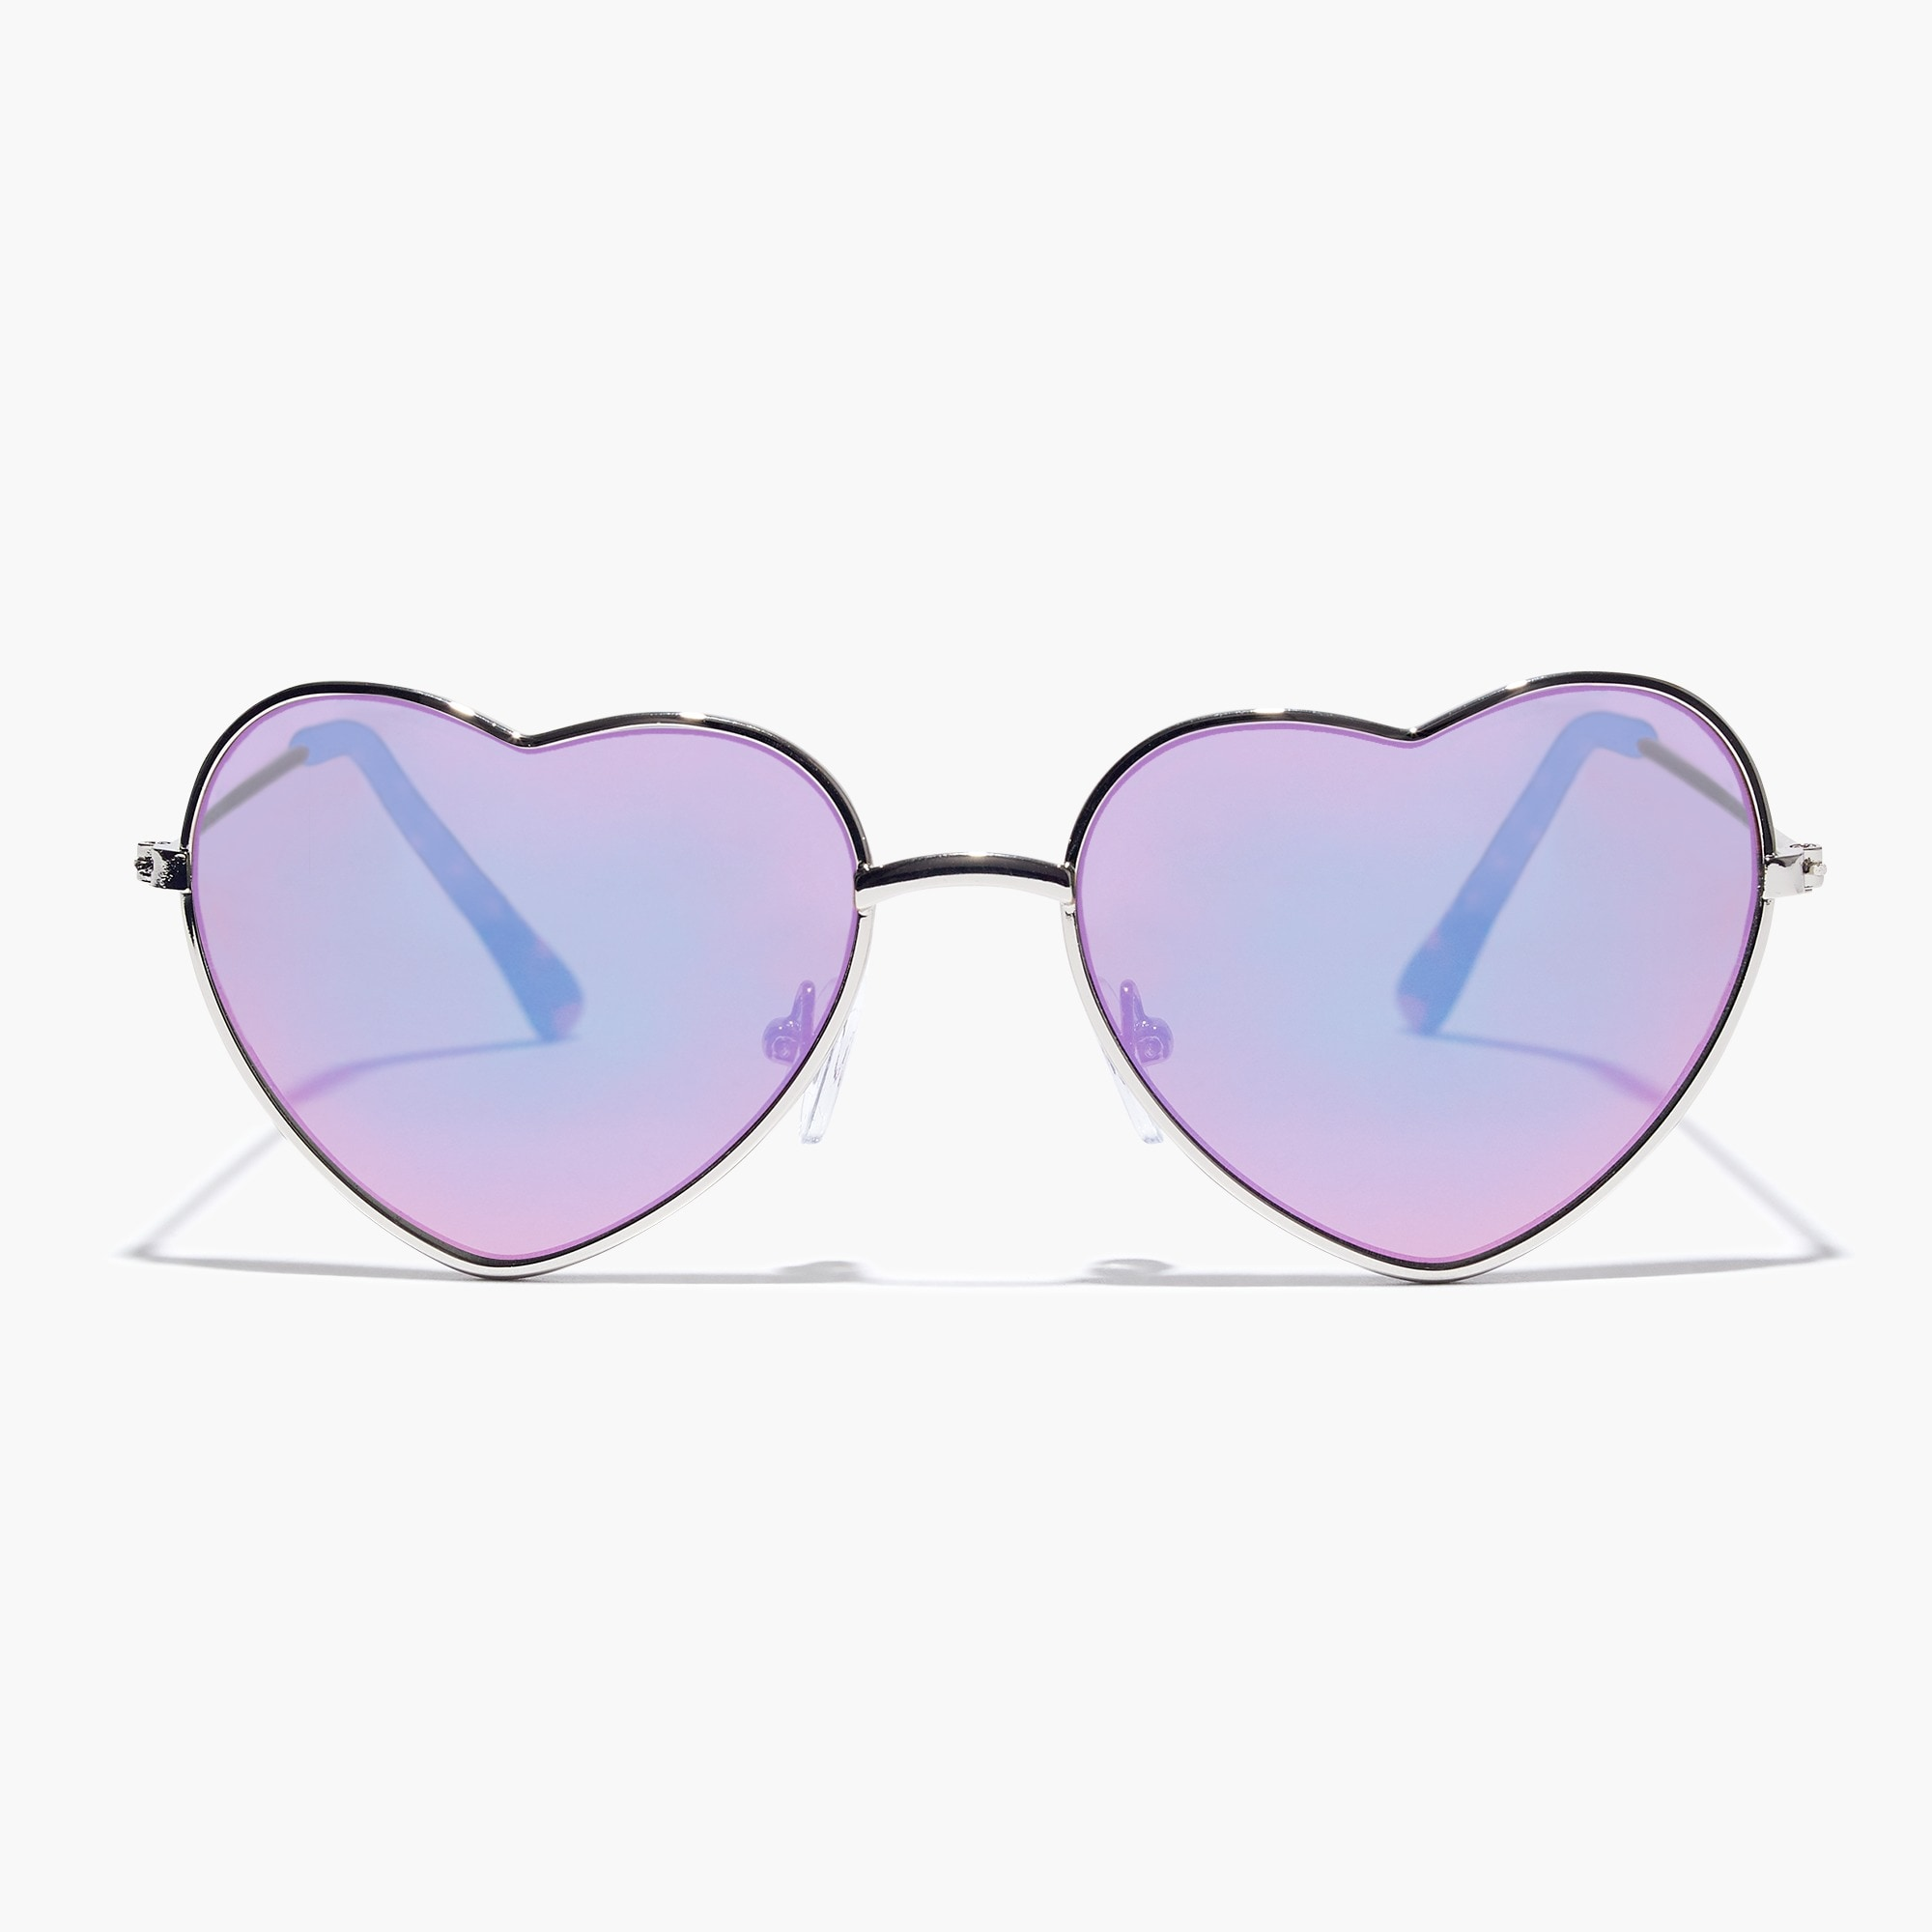 Girls' heart-shaped sunnies girl jewelry & accessories c